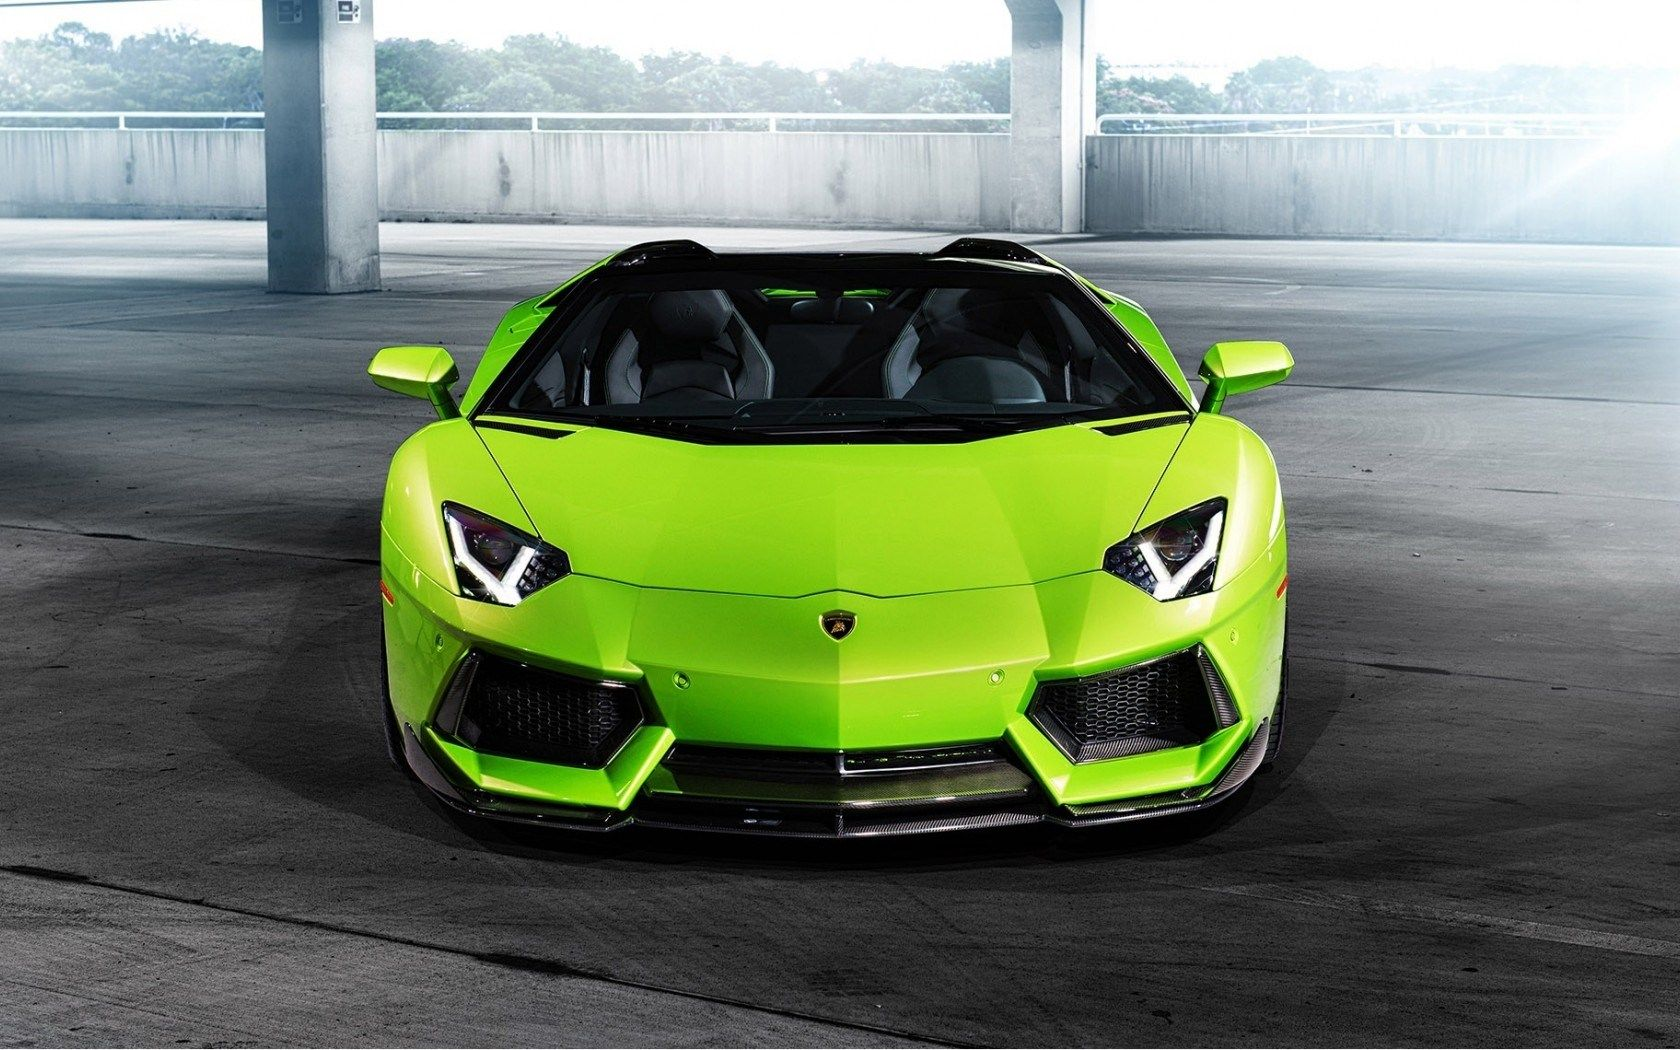 Lamborghini Green Car Hd Wallpaper Expensive Cars Hd Wallpaper